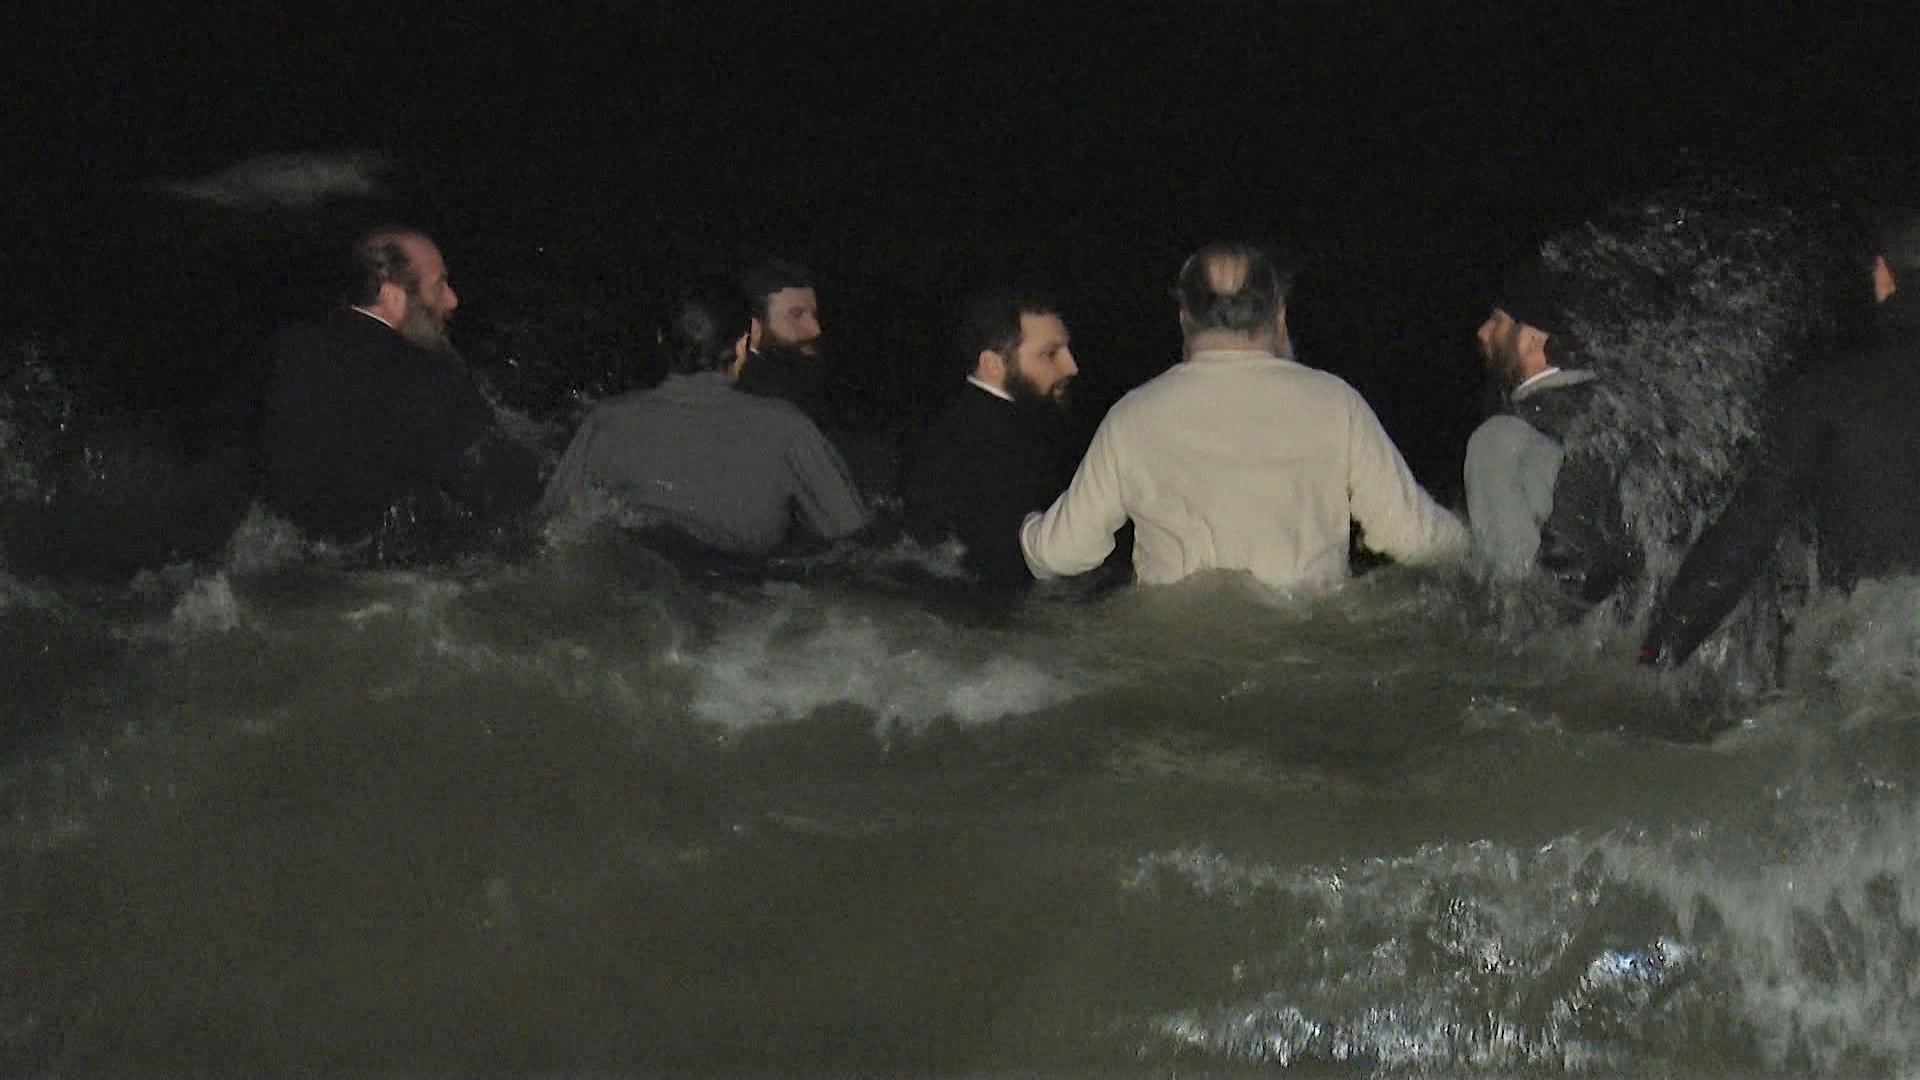 The tradition of entering the sea - Epiphany is performed by the bathroom ritual / photo /